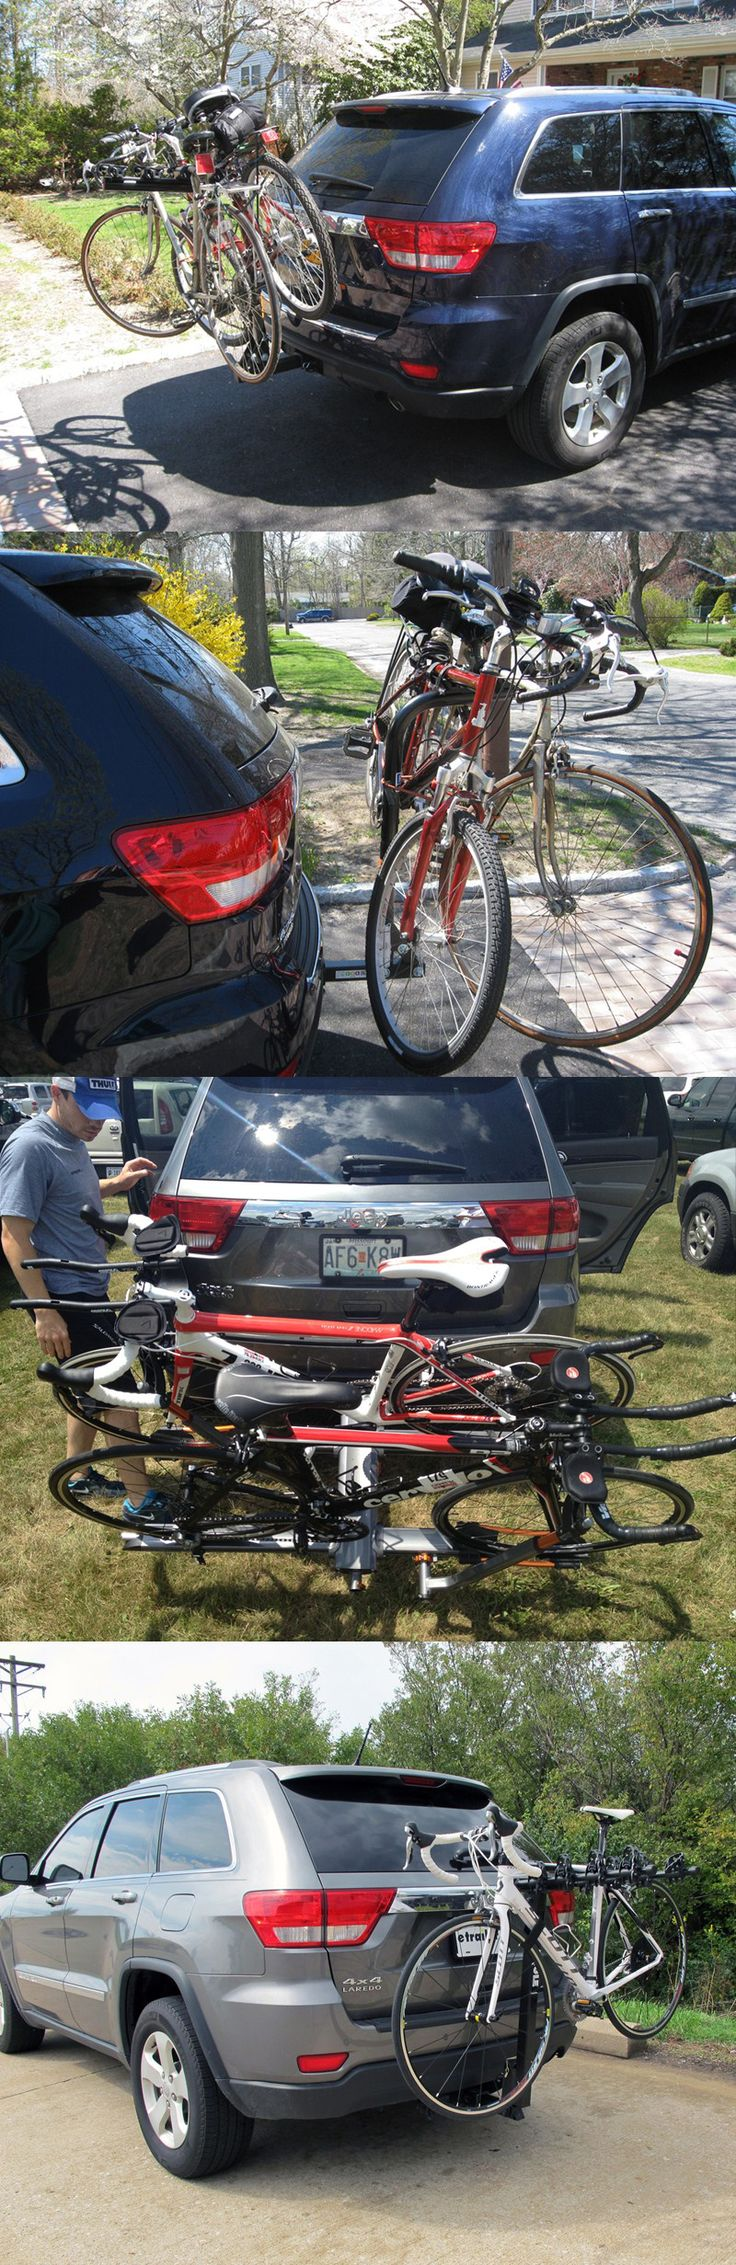 The Top 20 Most Popular bike racks for the Jeep Grand Cherokee based on user reviews and function! See why these accessories are the favorites and chose the best fit for your bike and vehicle! Go and get biking!